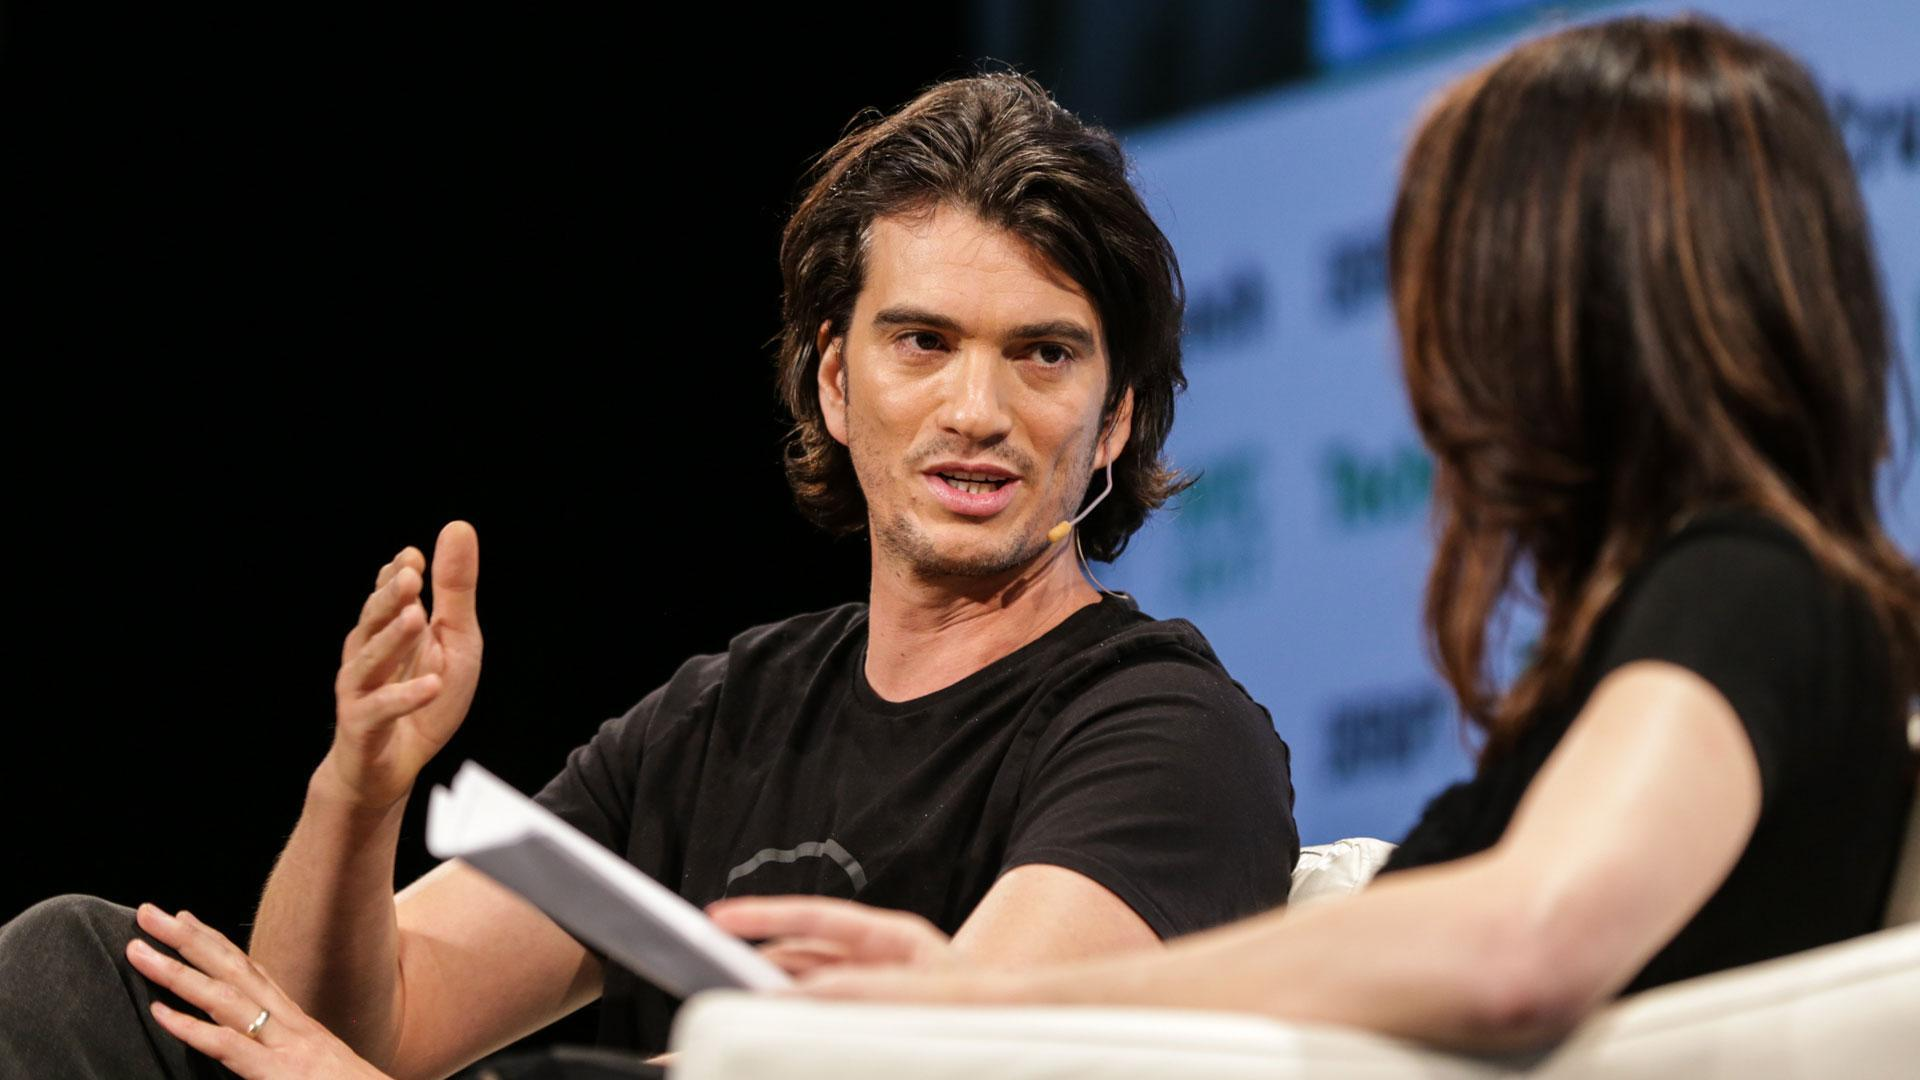 Optimizing Space Itself with WeWork's Adam Neumann